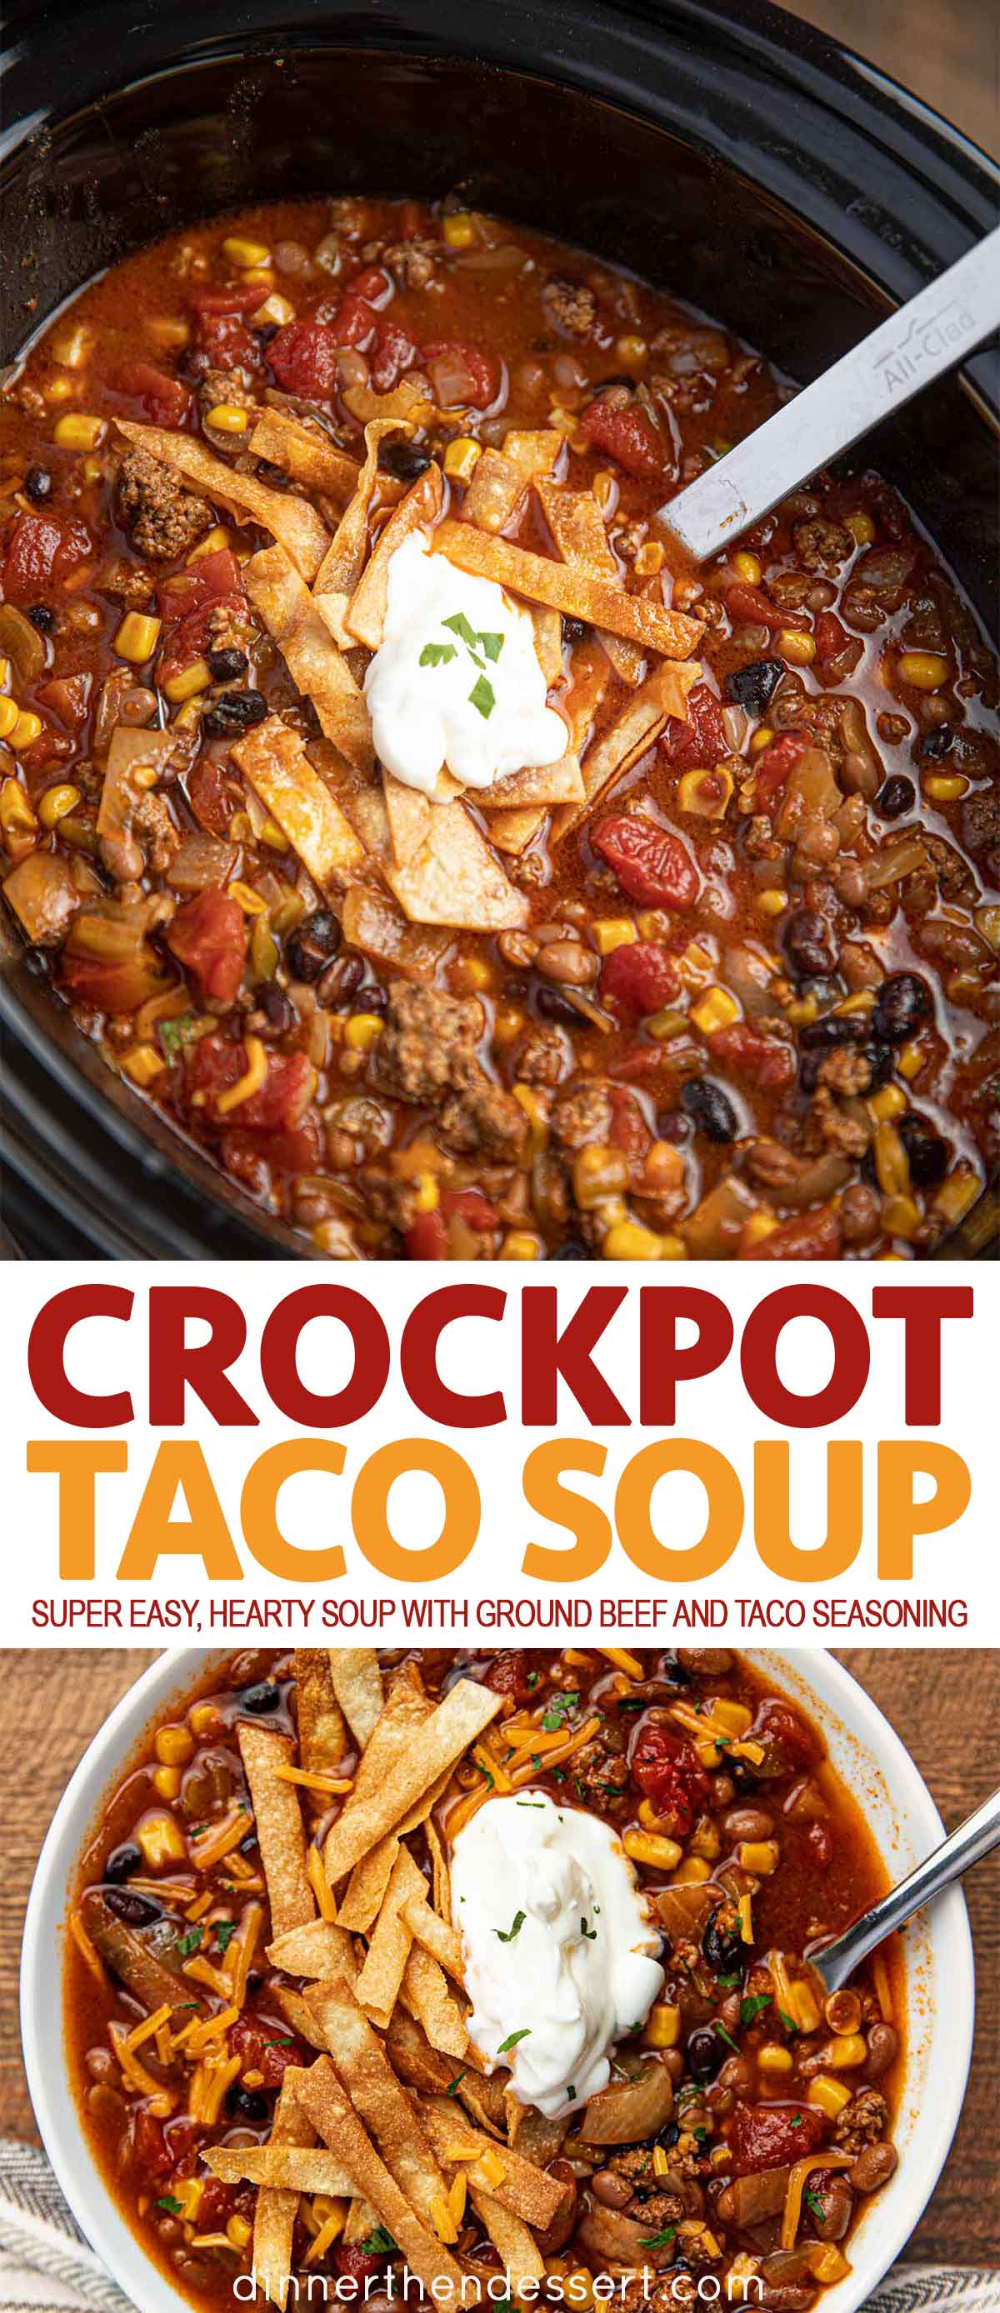 Slow Cooker Taco Soup Is An Easy Hearty Soup With Ground Beef Taco Seasoning Kidney Beans Tomatoes In 2020 Slow Cooker Tacos Soup With Ground Beef Crock Pot Tacos